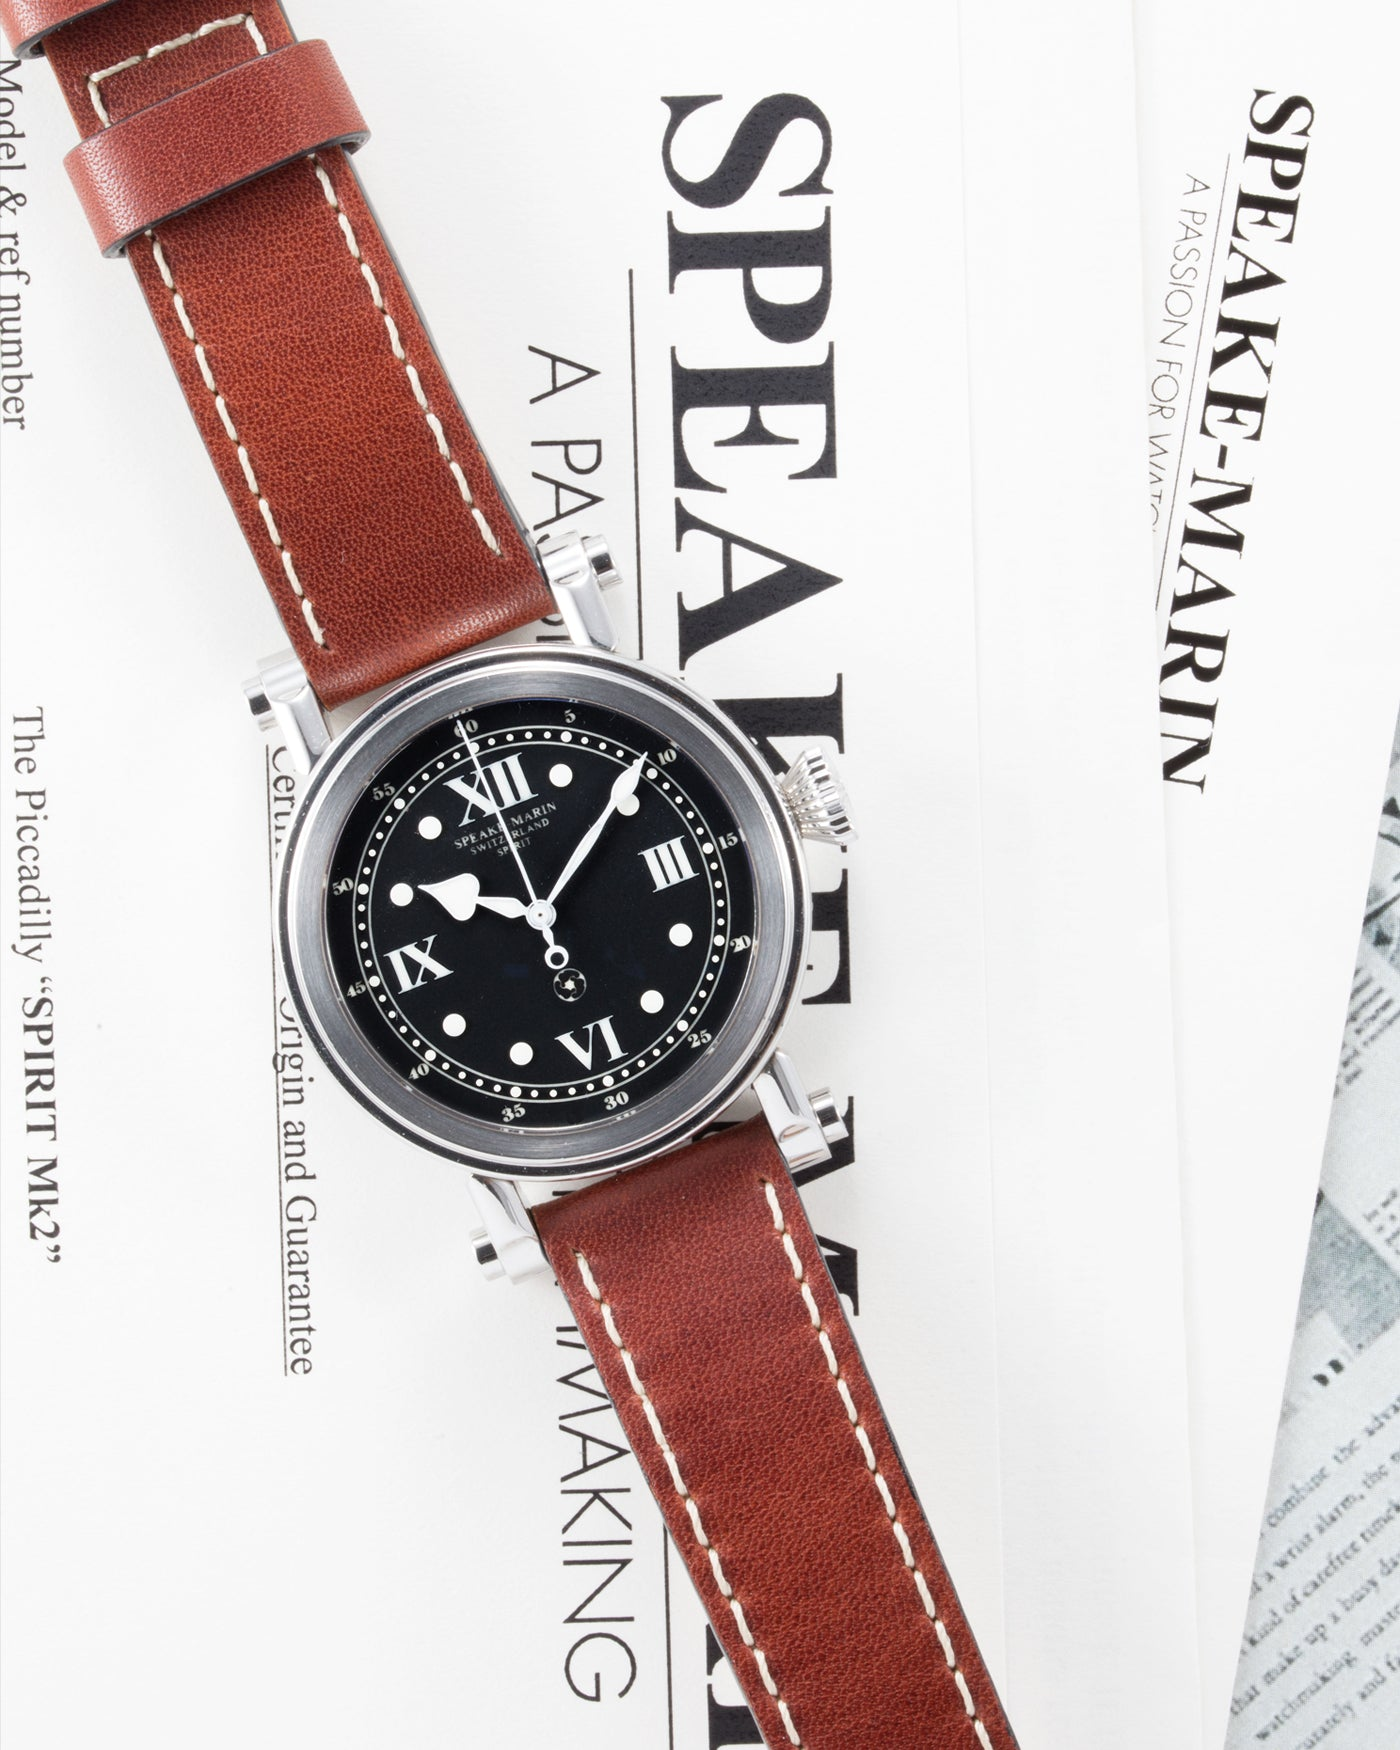 Speake Marin Spirit II